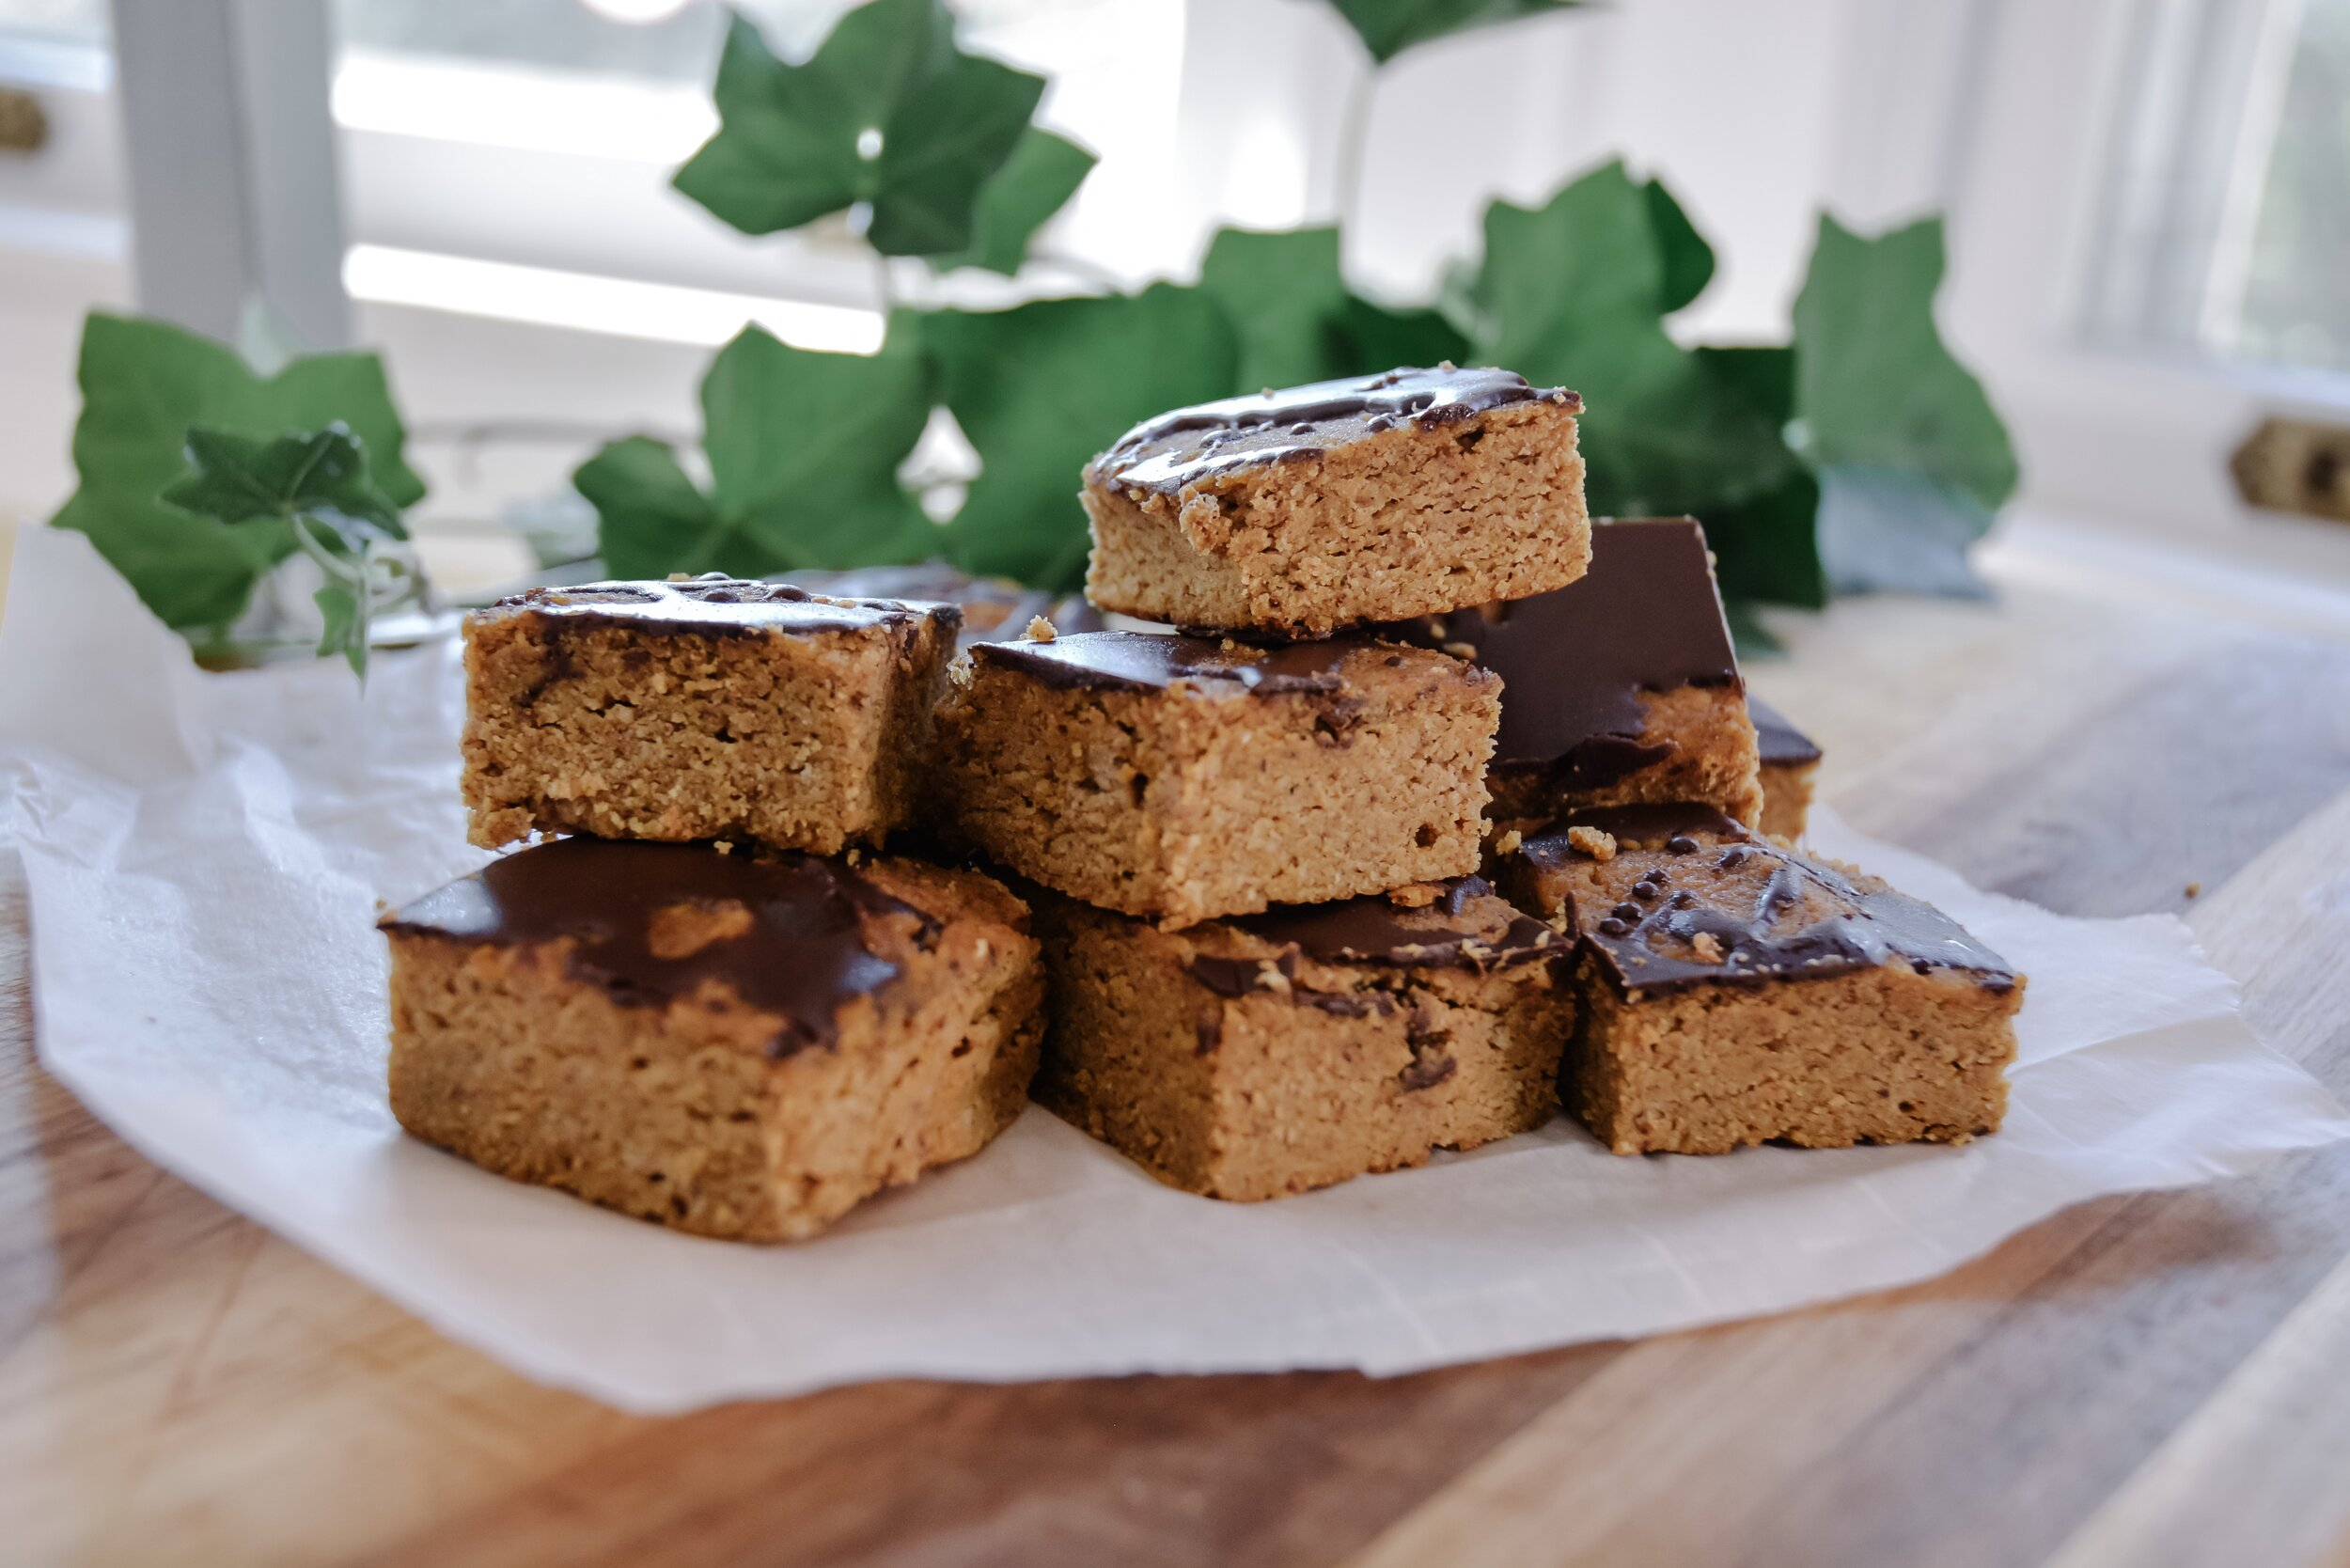 Paleo chocolate pumpkin bars on table with greens in the background